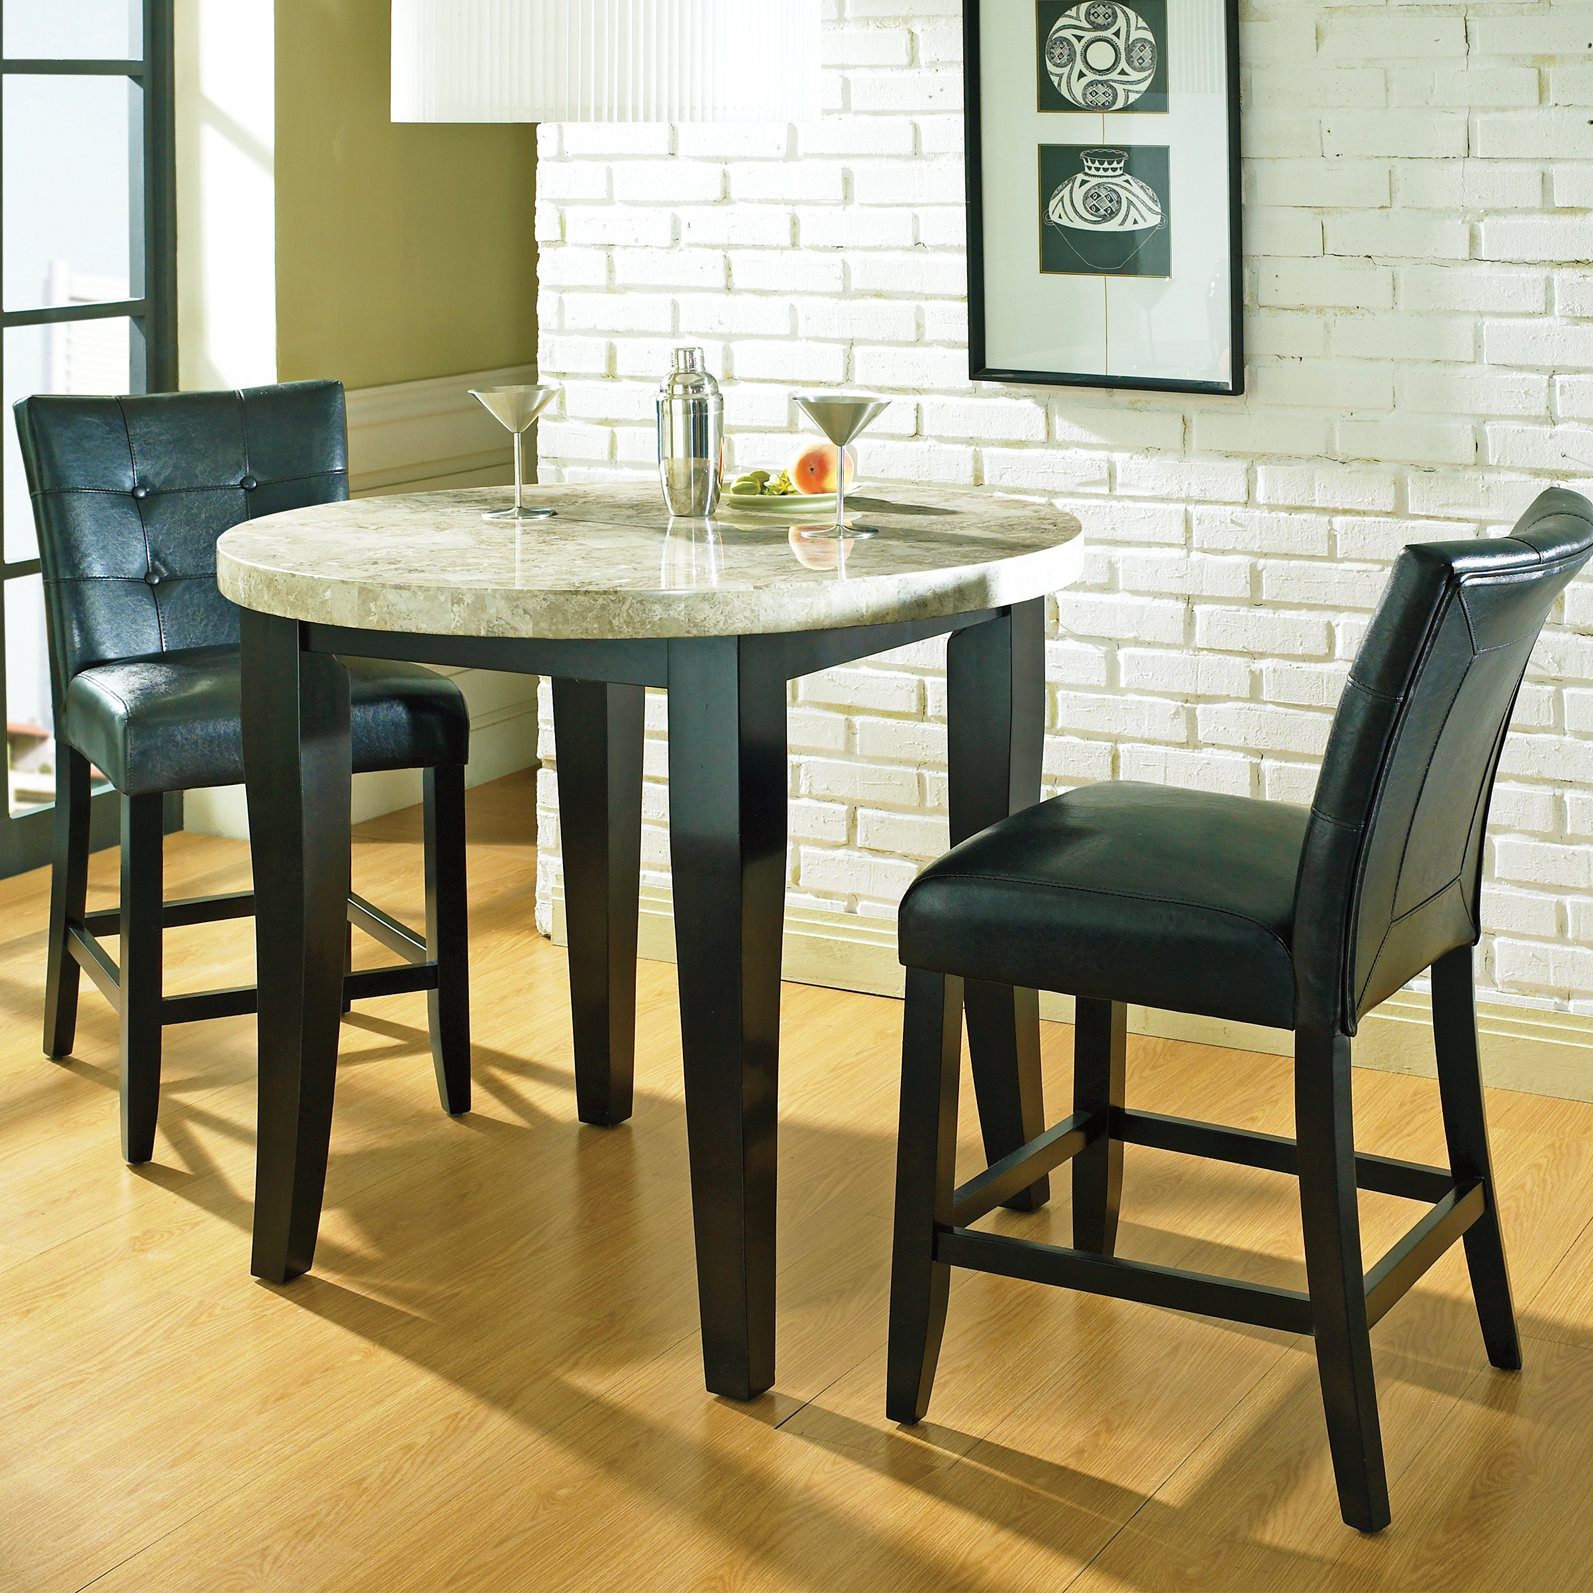 latitude run chloe counter height piece pub table set reviews tall accent long end furniture chests and cabinets marble coffee black legs white lacquer avani mango wood drum